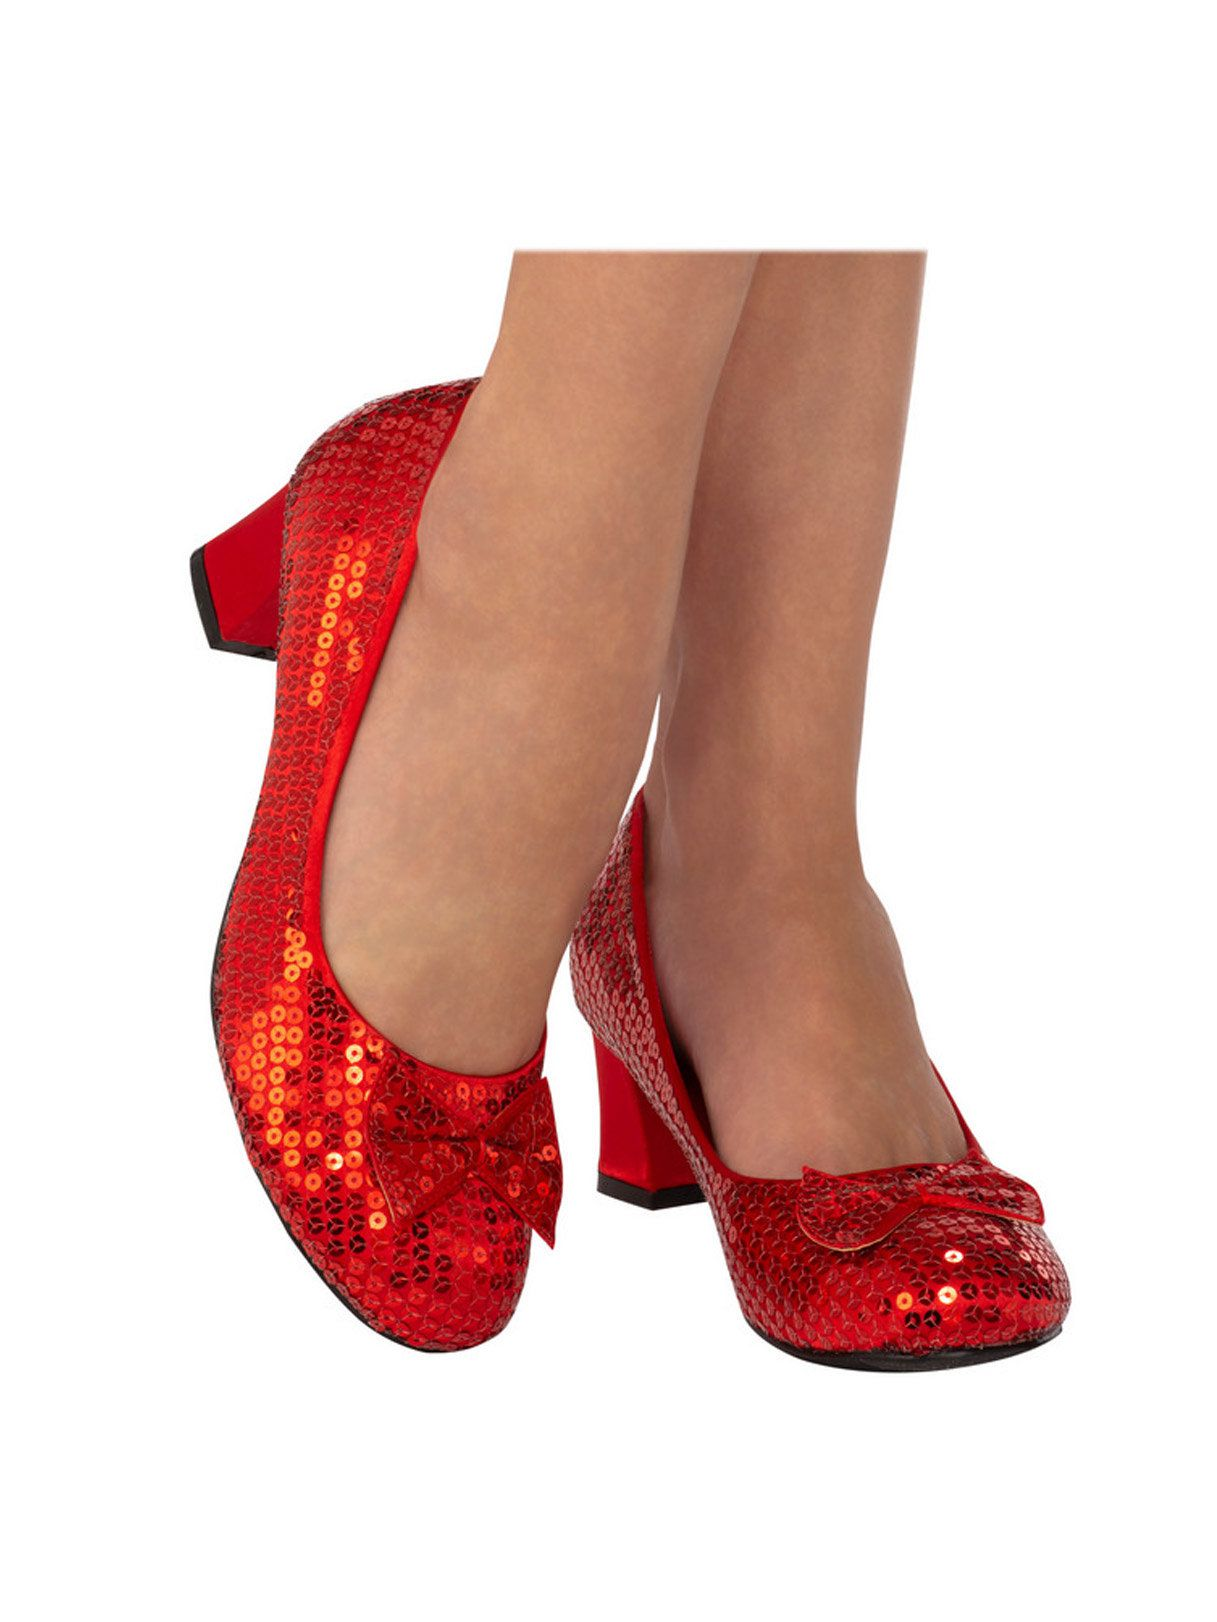 b7a3f0e1ef9d6 Red Sequin Pumps for Adults - Adult Costumes for 2018 | Wholesale ...